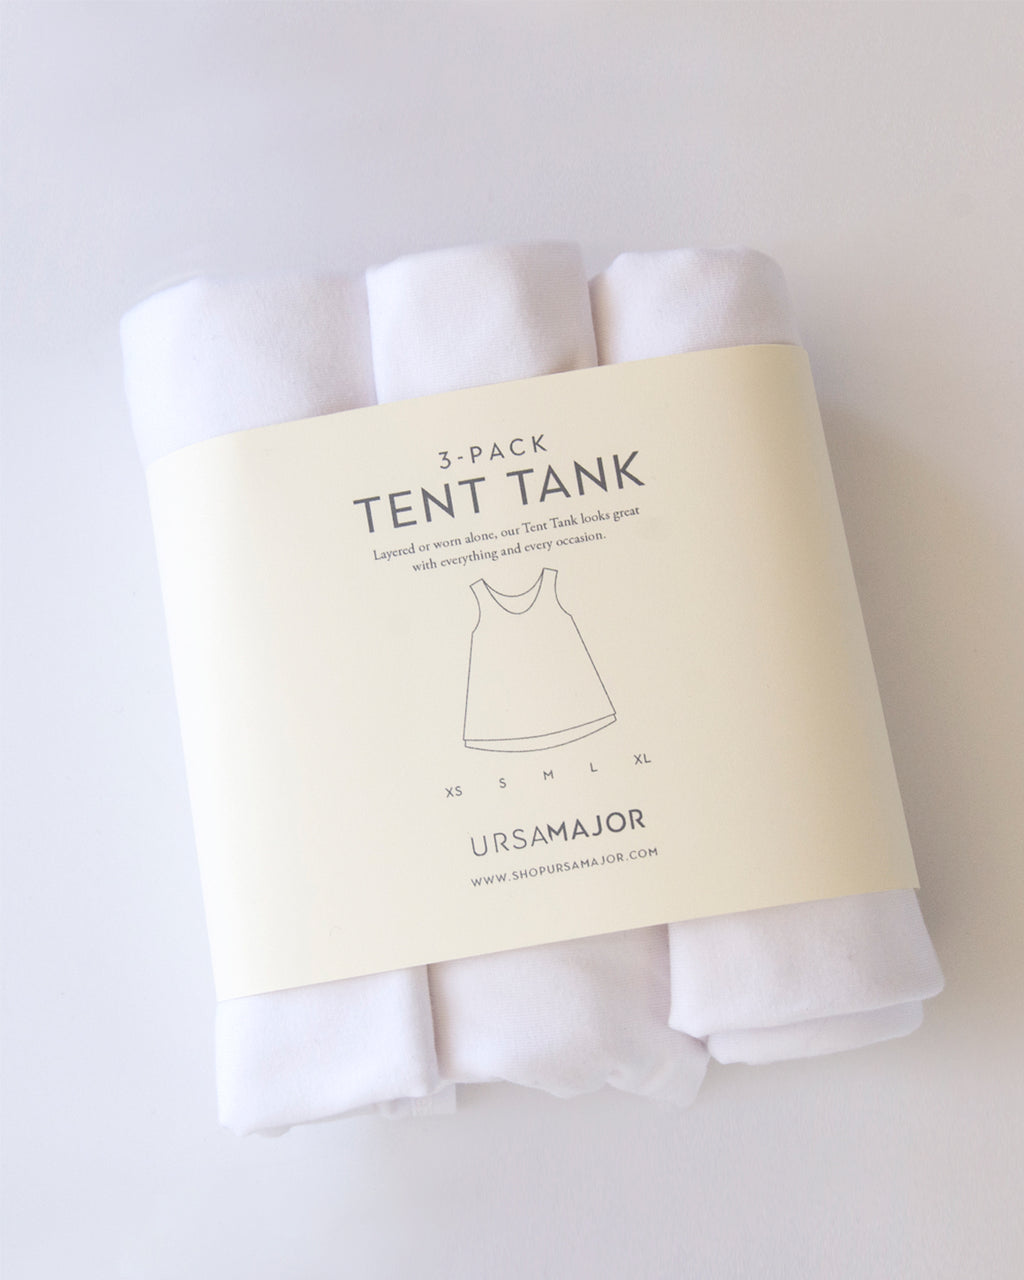 3-Pack Tent Tank / White